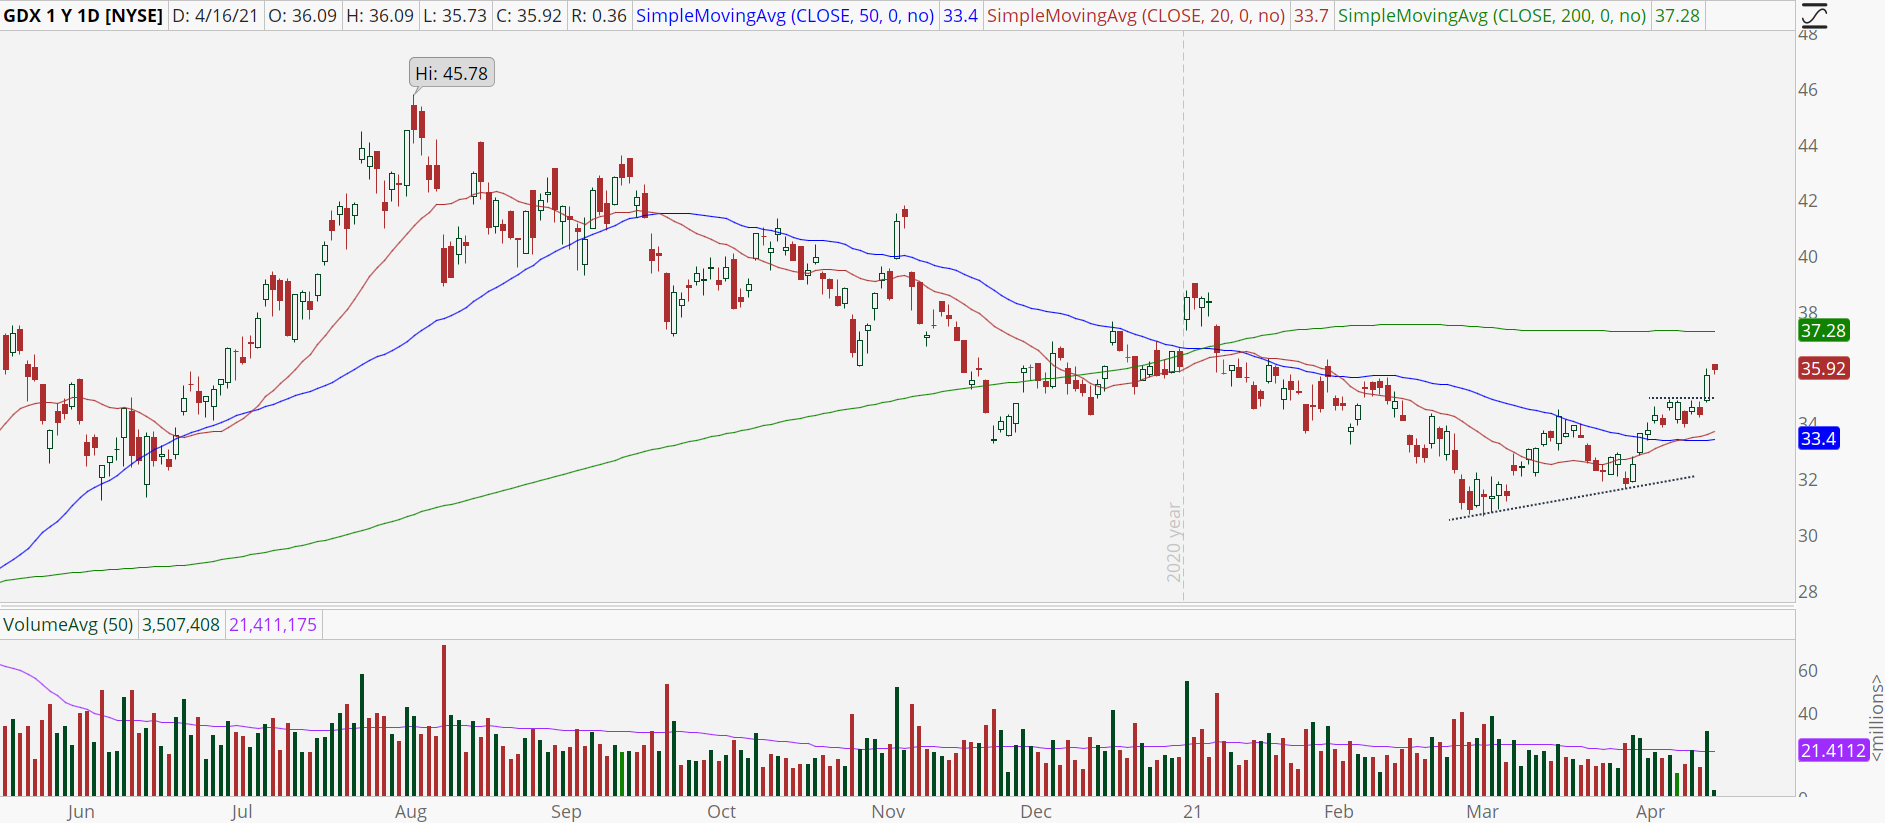 Gold Miners ETF (GDX) with upside trend reversal